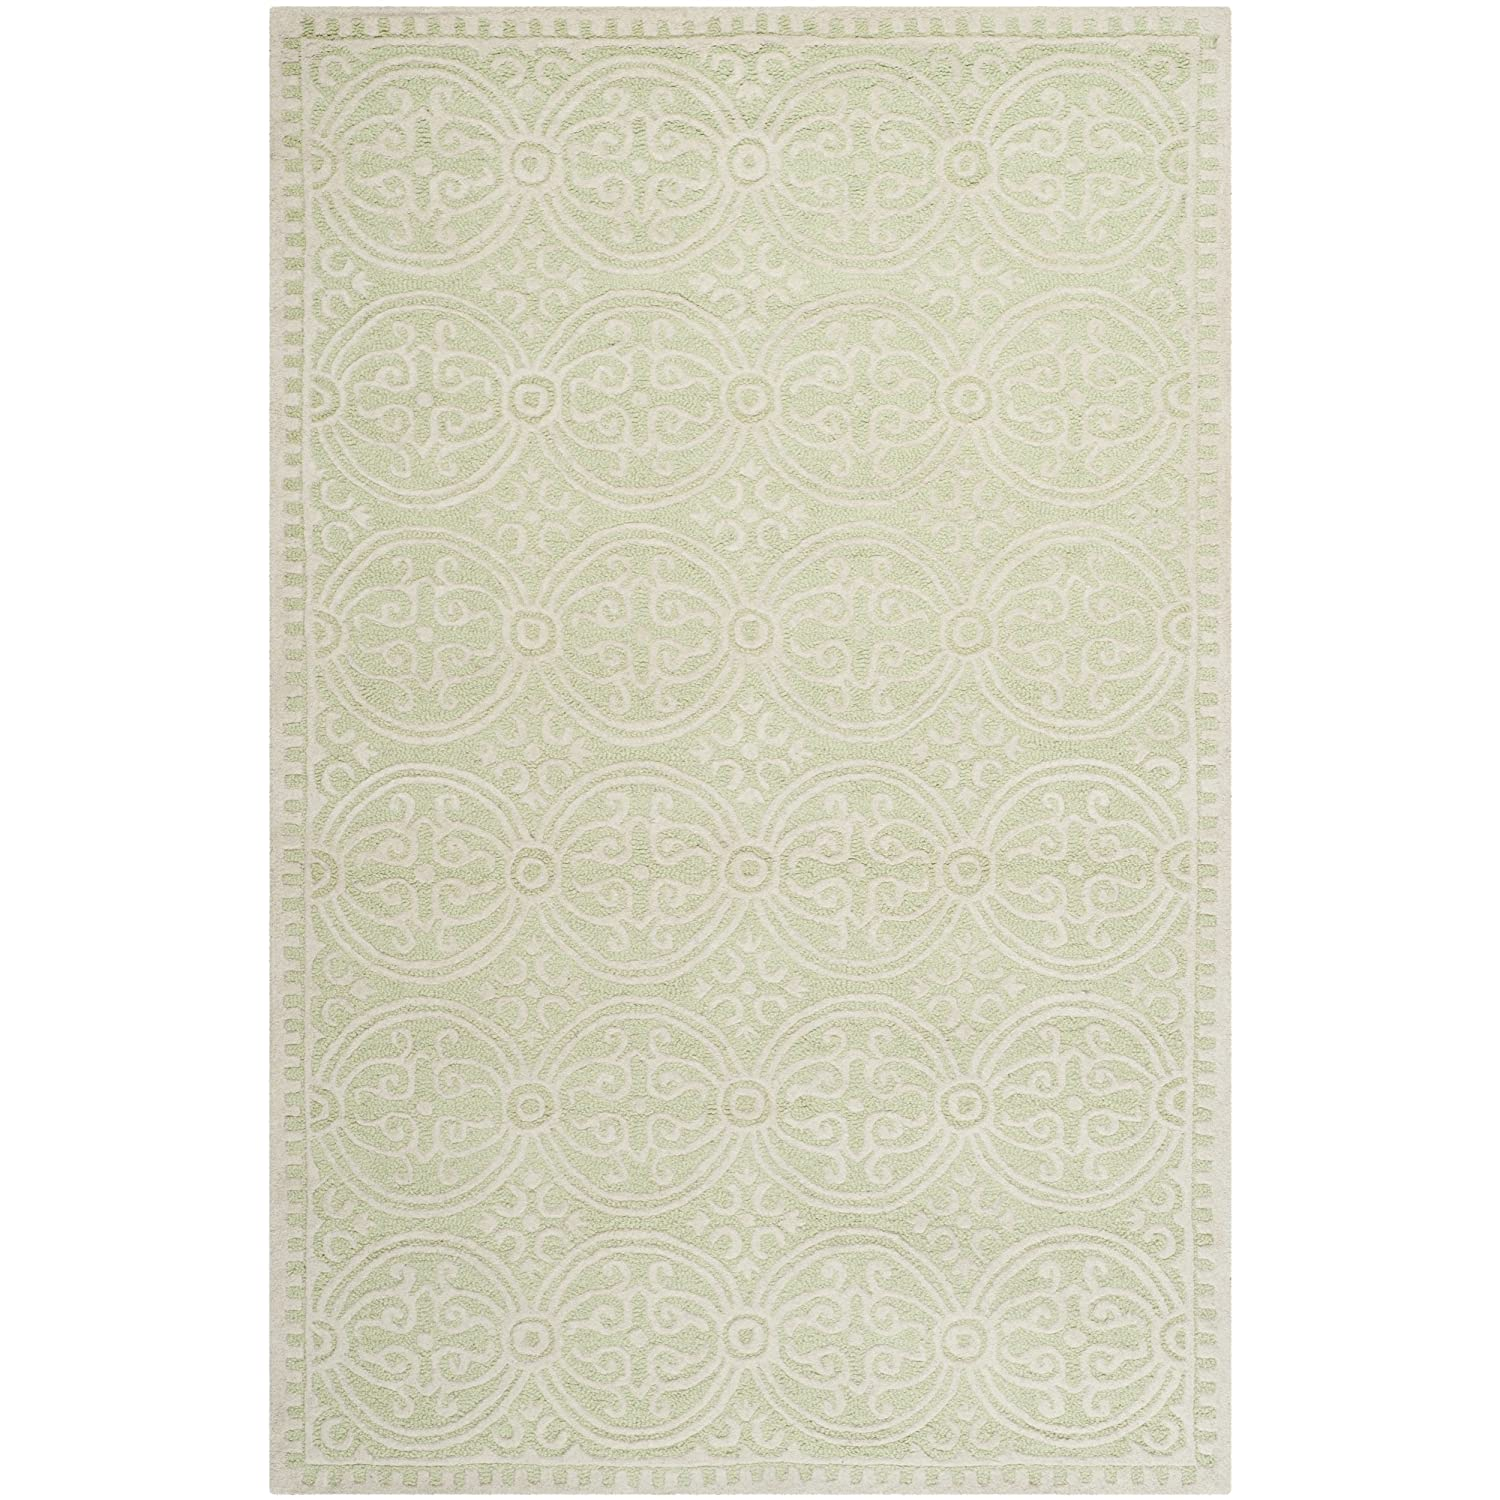 Superb Amazon.com: Safavieh Cambridge Collection CAM123B Handcrafted Moroccan  Geometric Light Green And Ivory Premium Wool Area Rug (4u0027 X 6u0027): Kitchen U0026  Dining